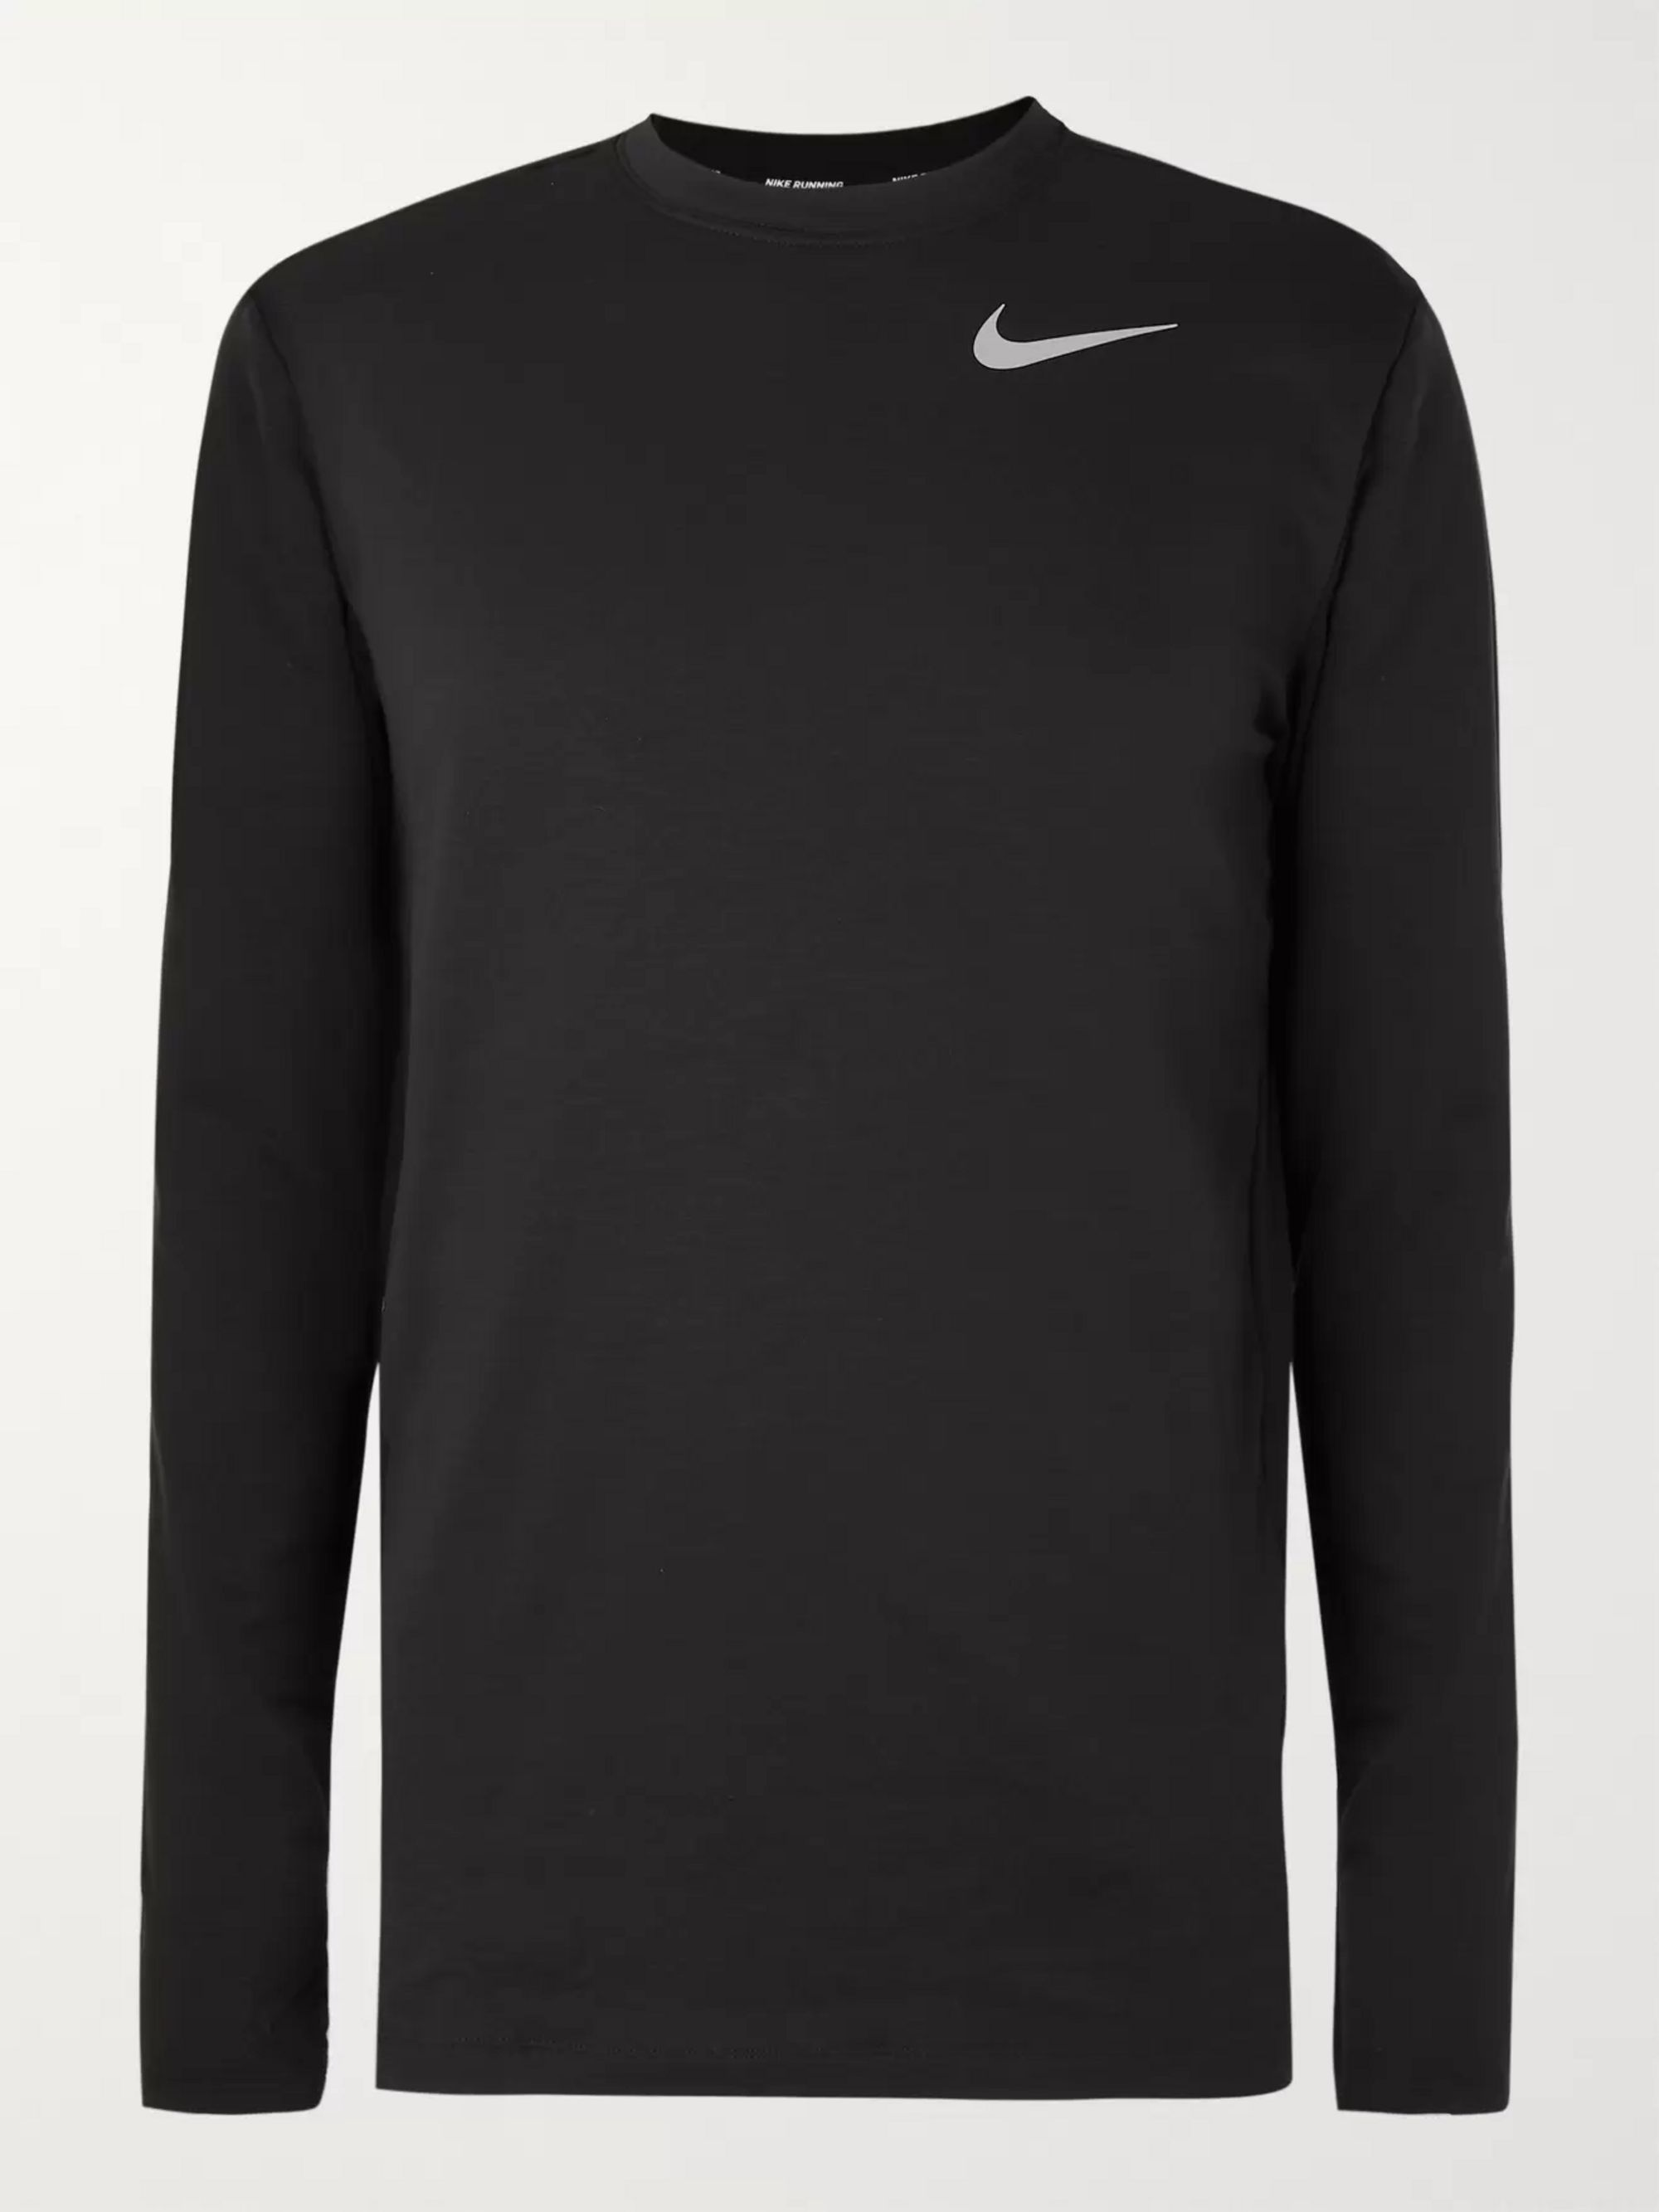 Nike Running Sphere Element 2.0 Dri-FIT Top